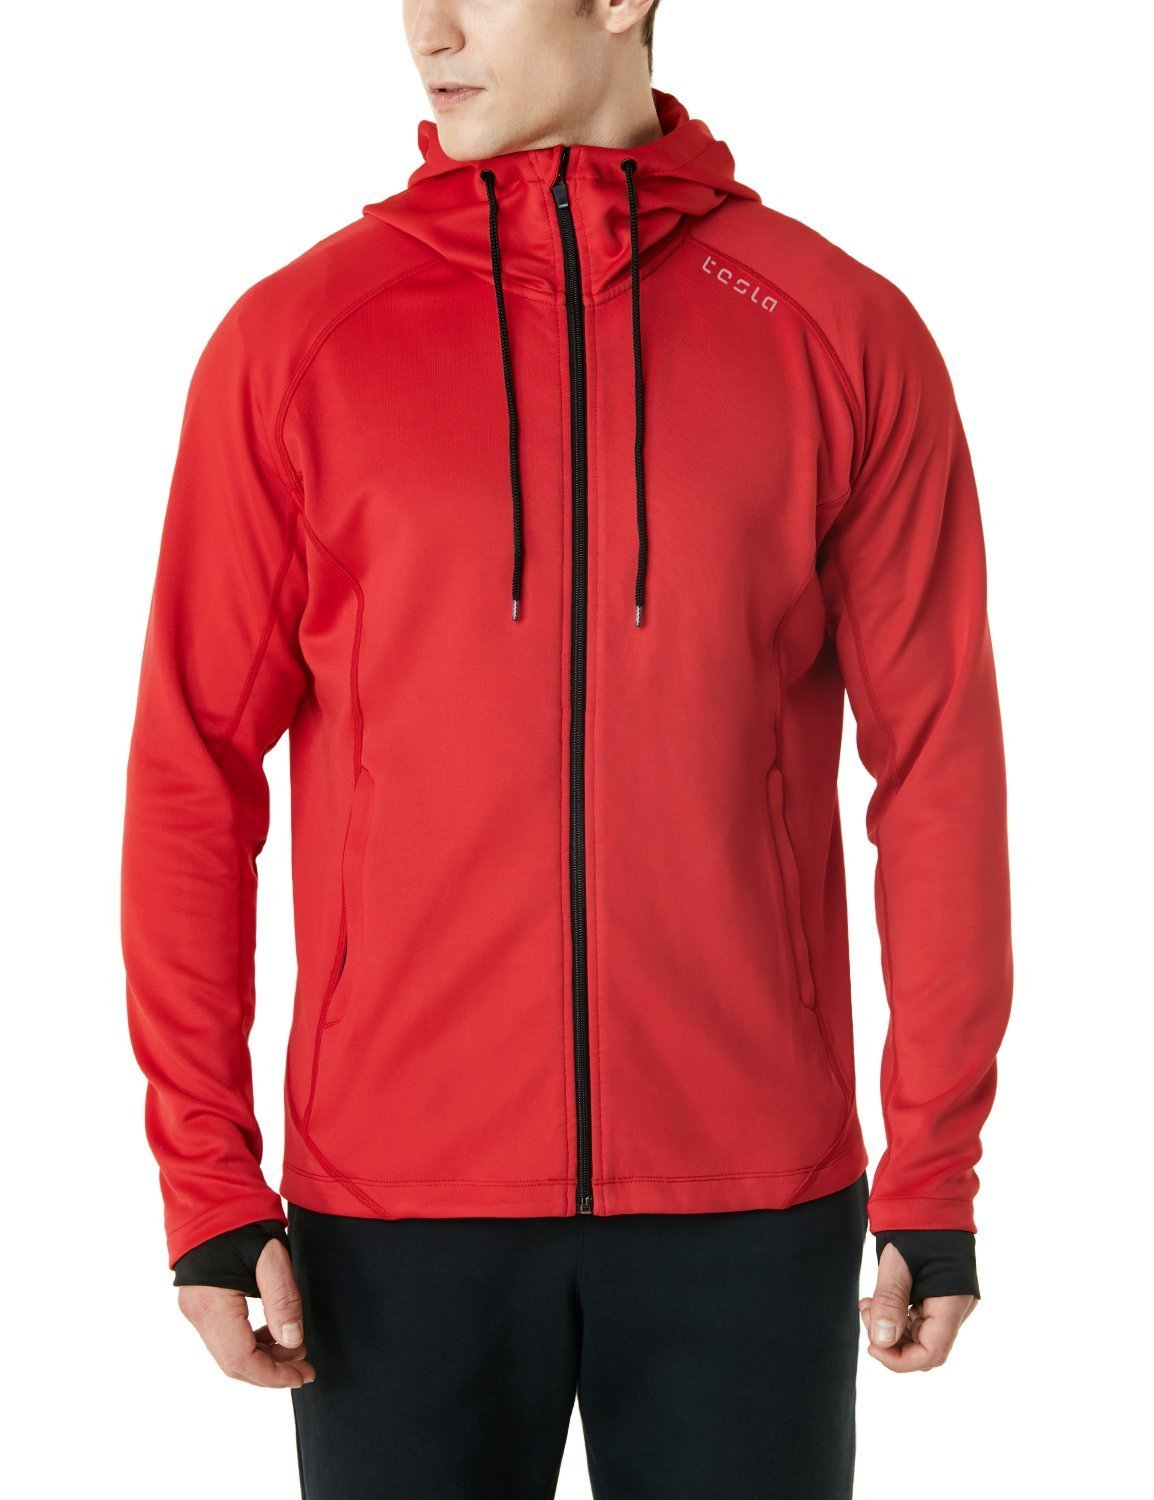 TSLA Men's Performance Active Training Full-Zip Hoodie Jacket, Active Fullzip(mkj03) - Crimson Red, X-Large by TSLA